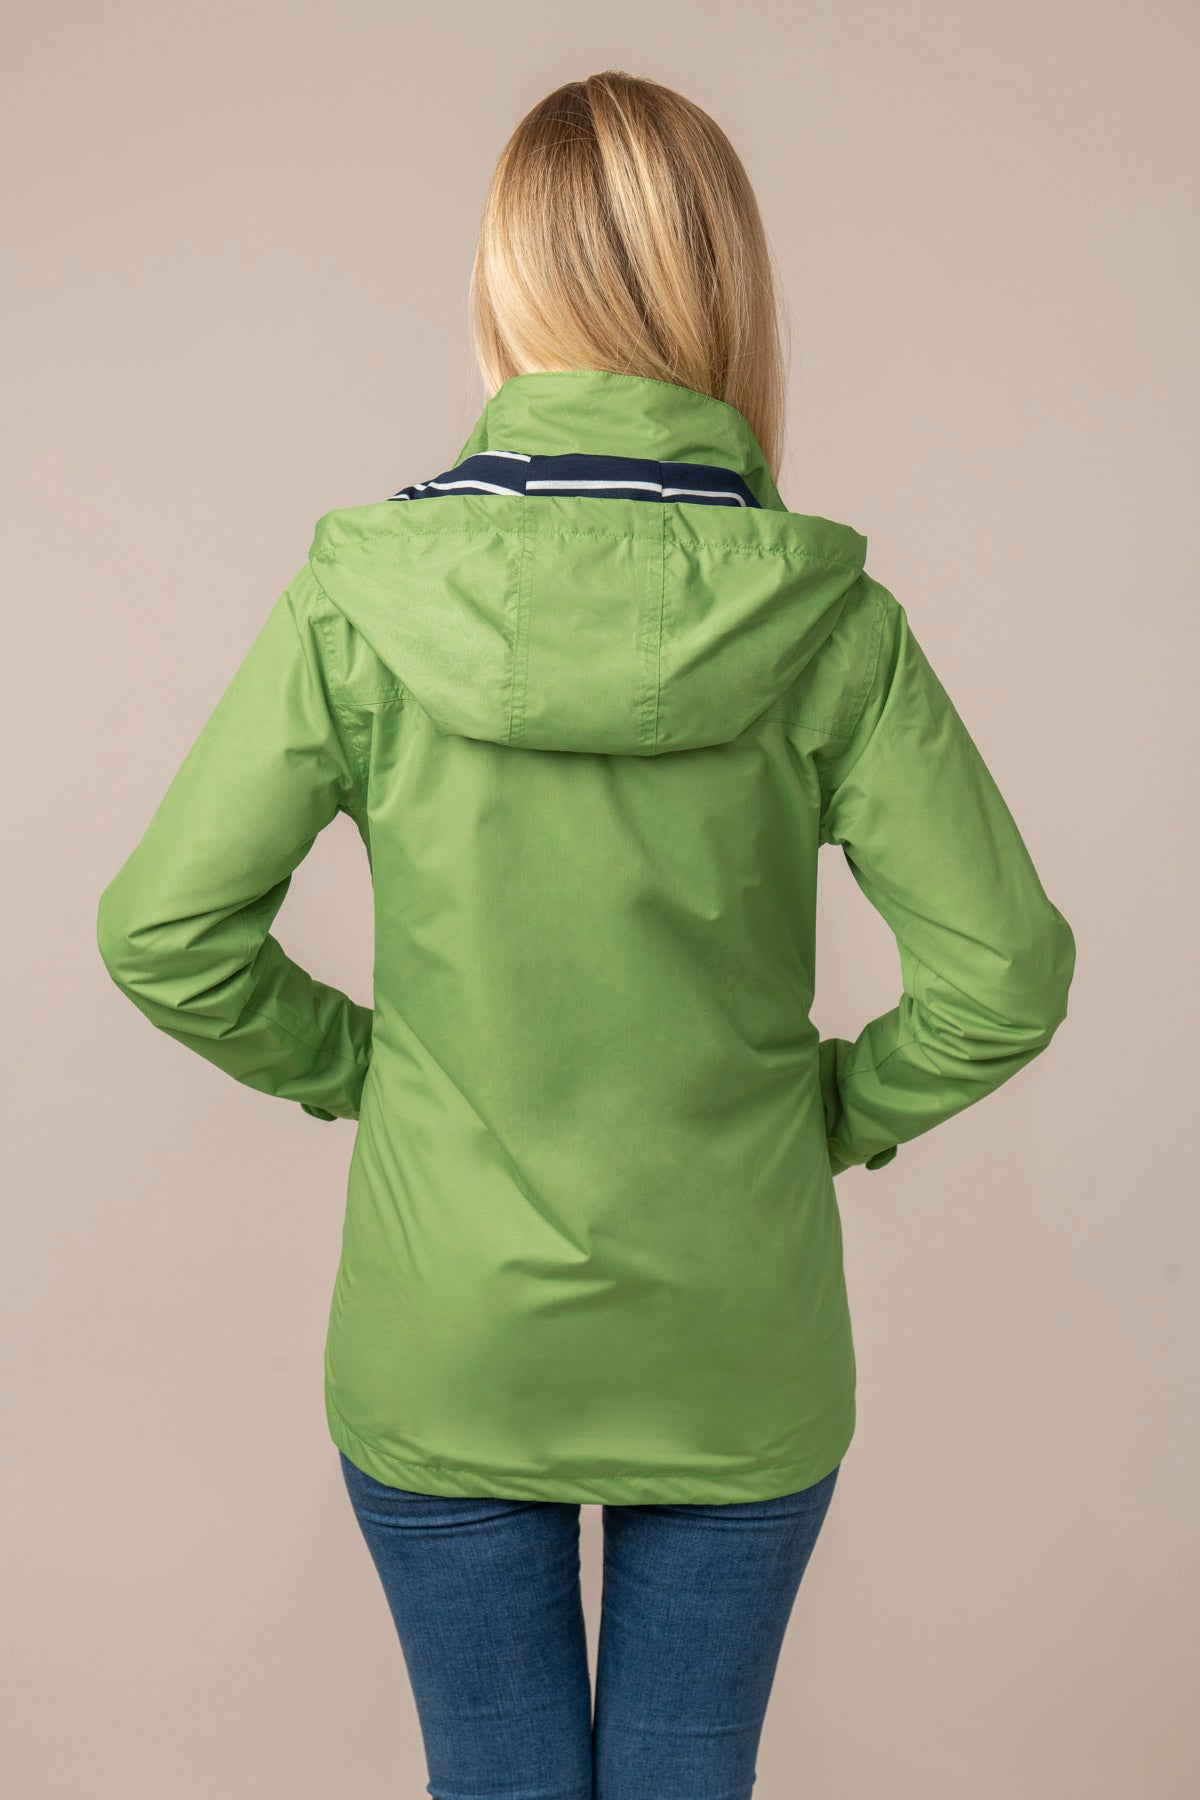 Beachcomber Jacket - Meadow Green